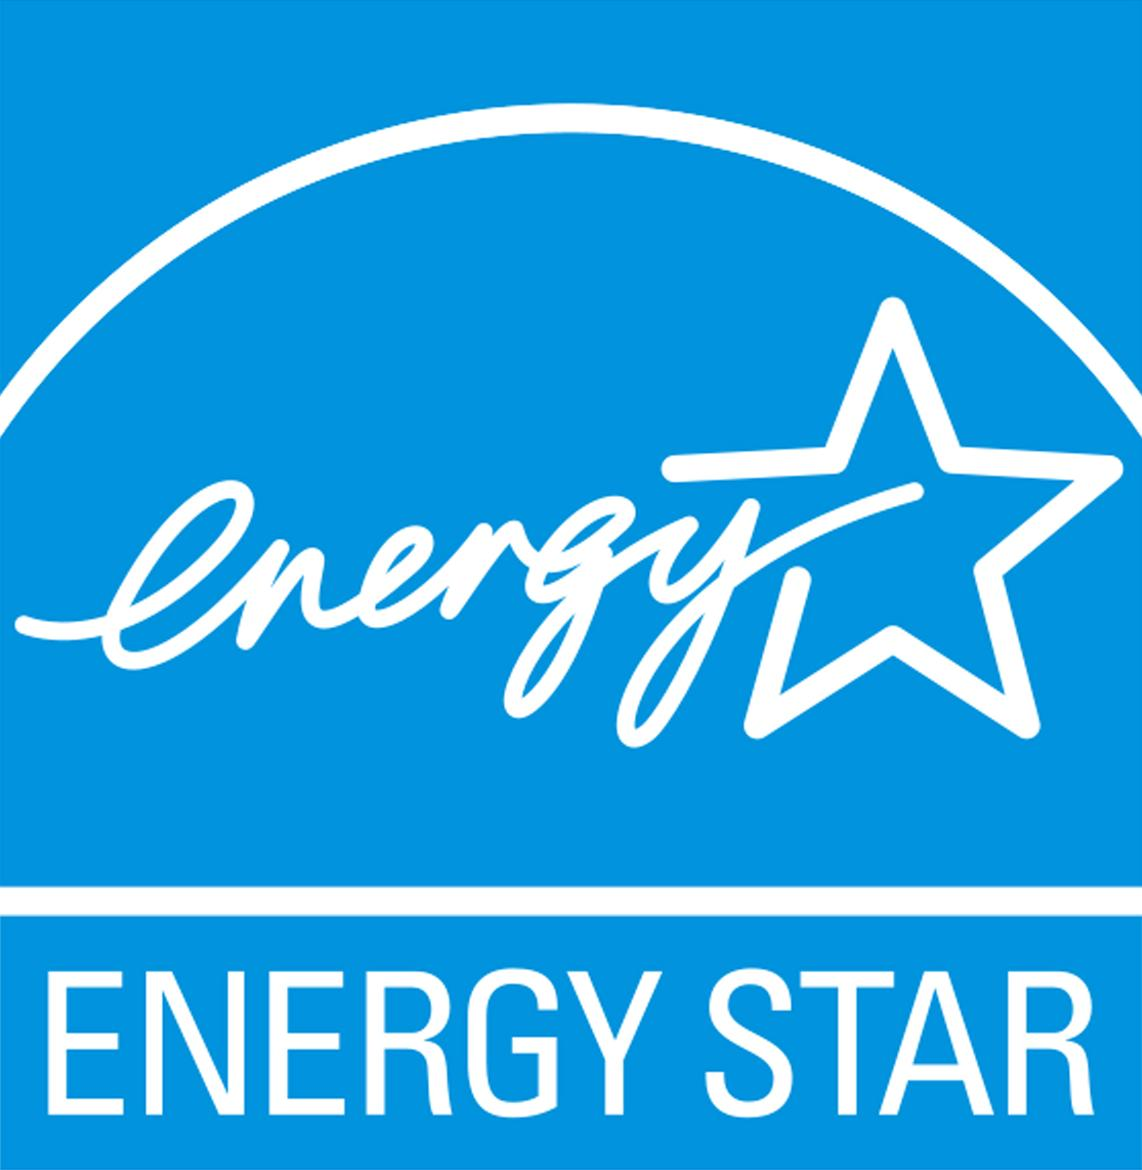 Making ENERGY STAR Certified Homes Electric Vehicle Ready